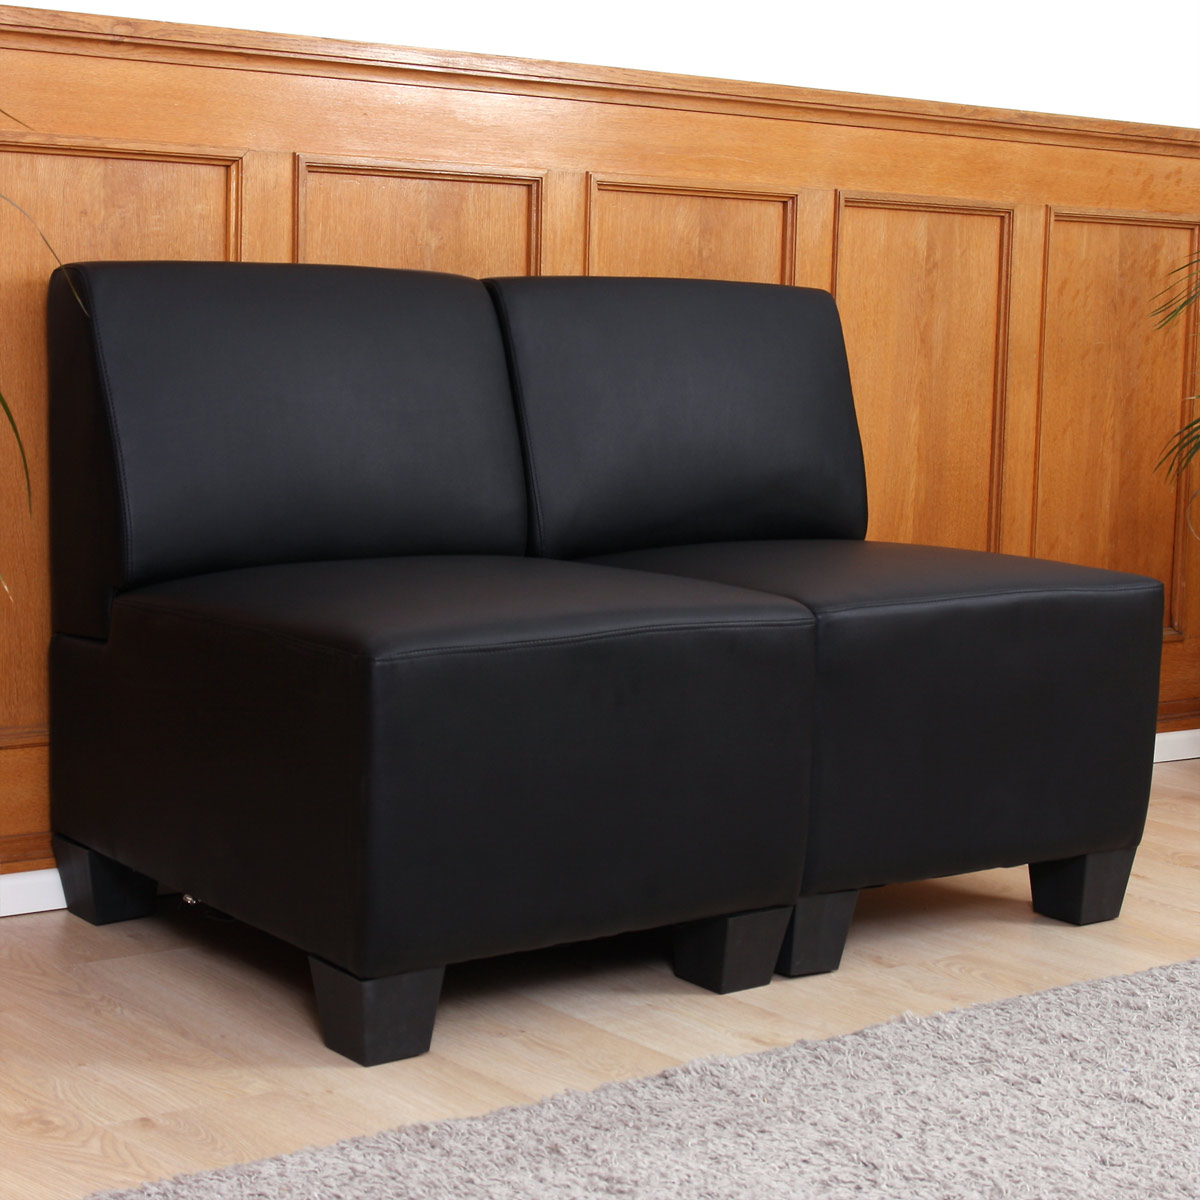 modular 2 sitzer sofa couch lyon kunstleder schwarz ohne armlehnen. Black Bedroom Furniture Sets. Home Design Ideas